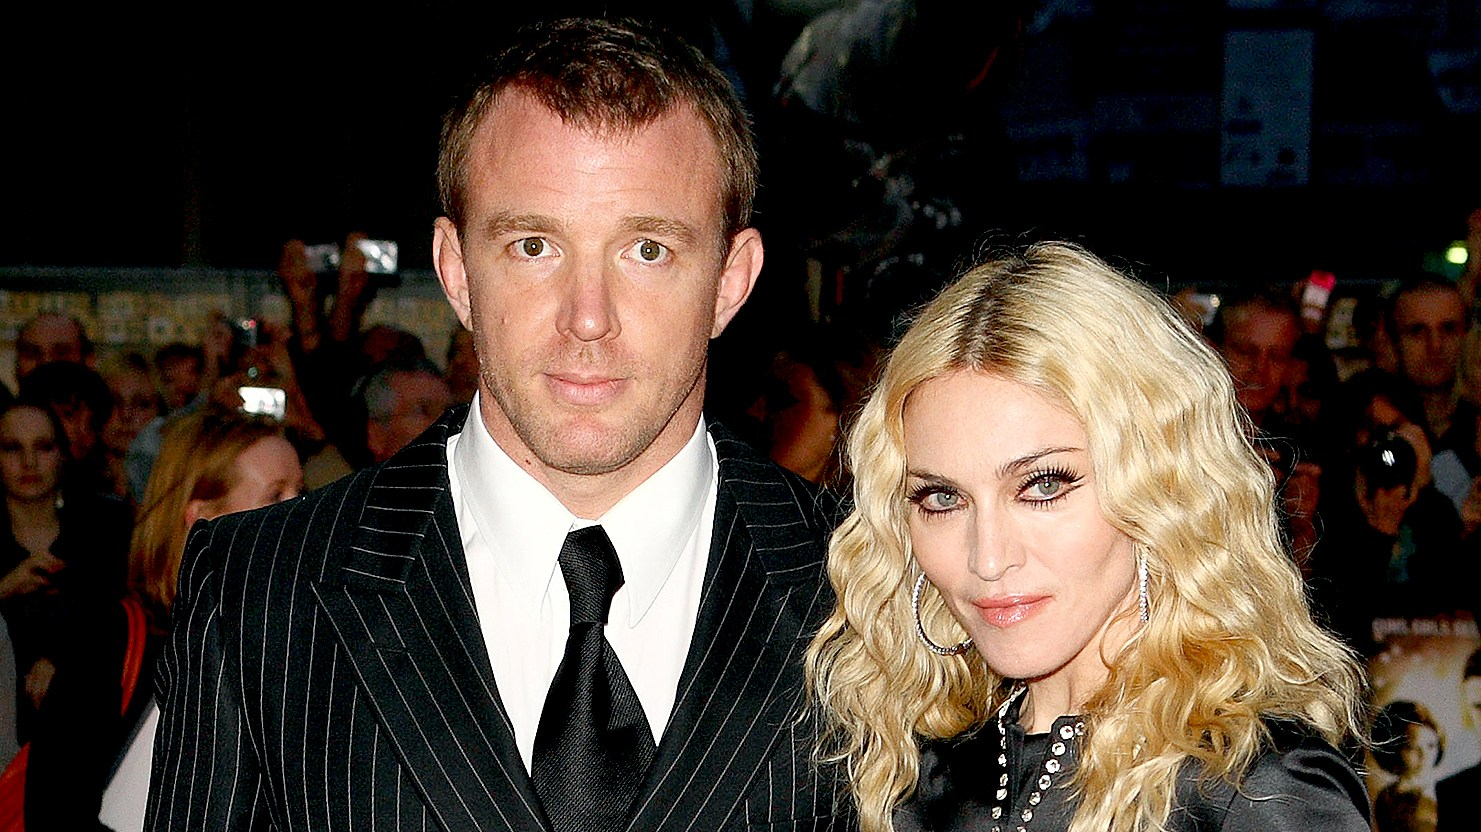 Guy Ritchie and Madonna arrive at the World Premiere of 'RocknRolla' at the Odeon West End on September 1, 2008.